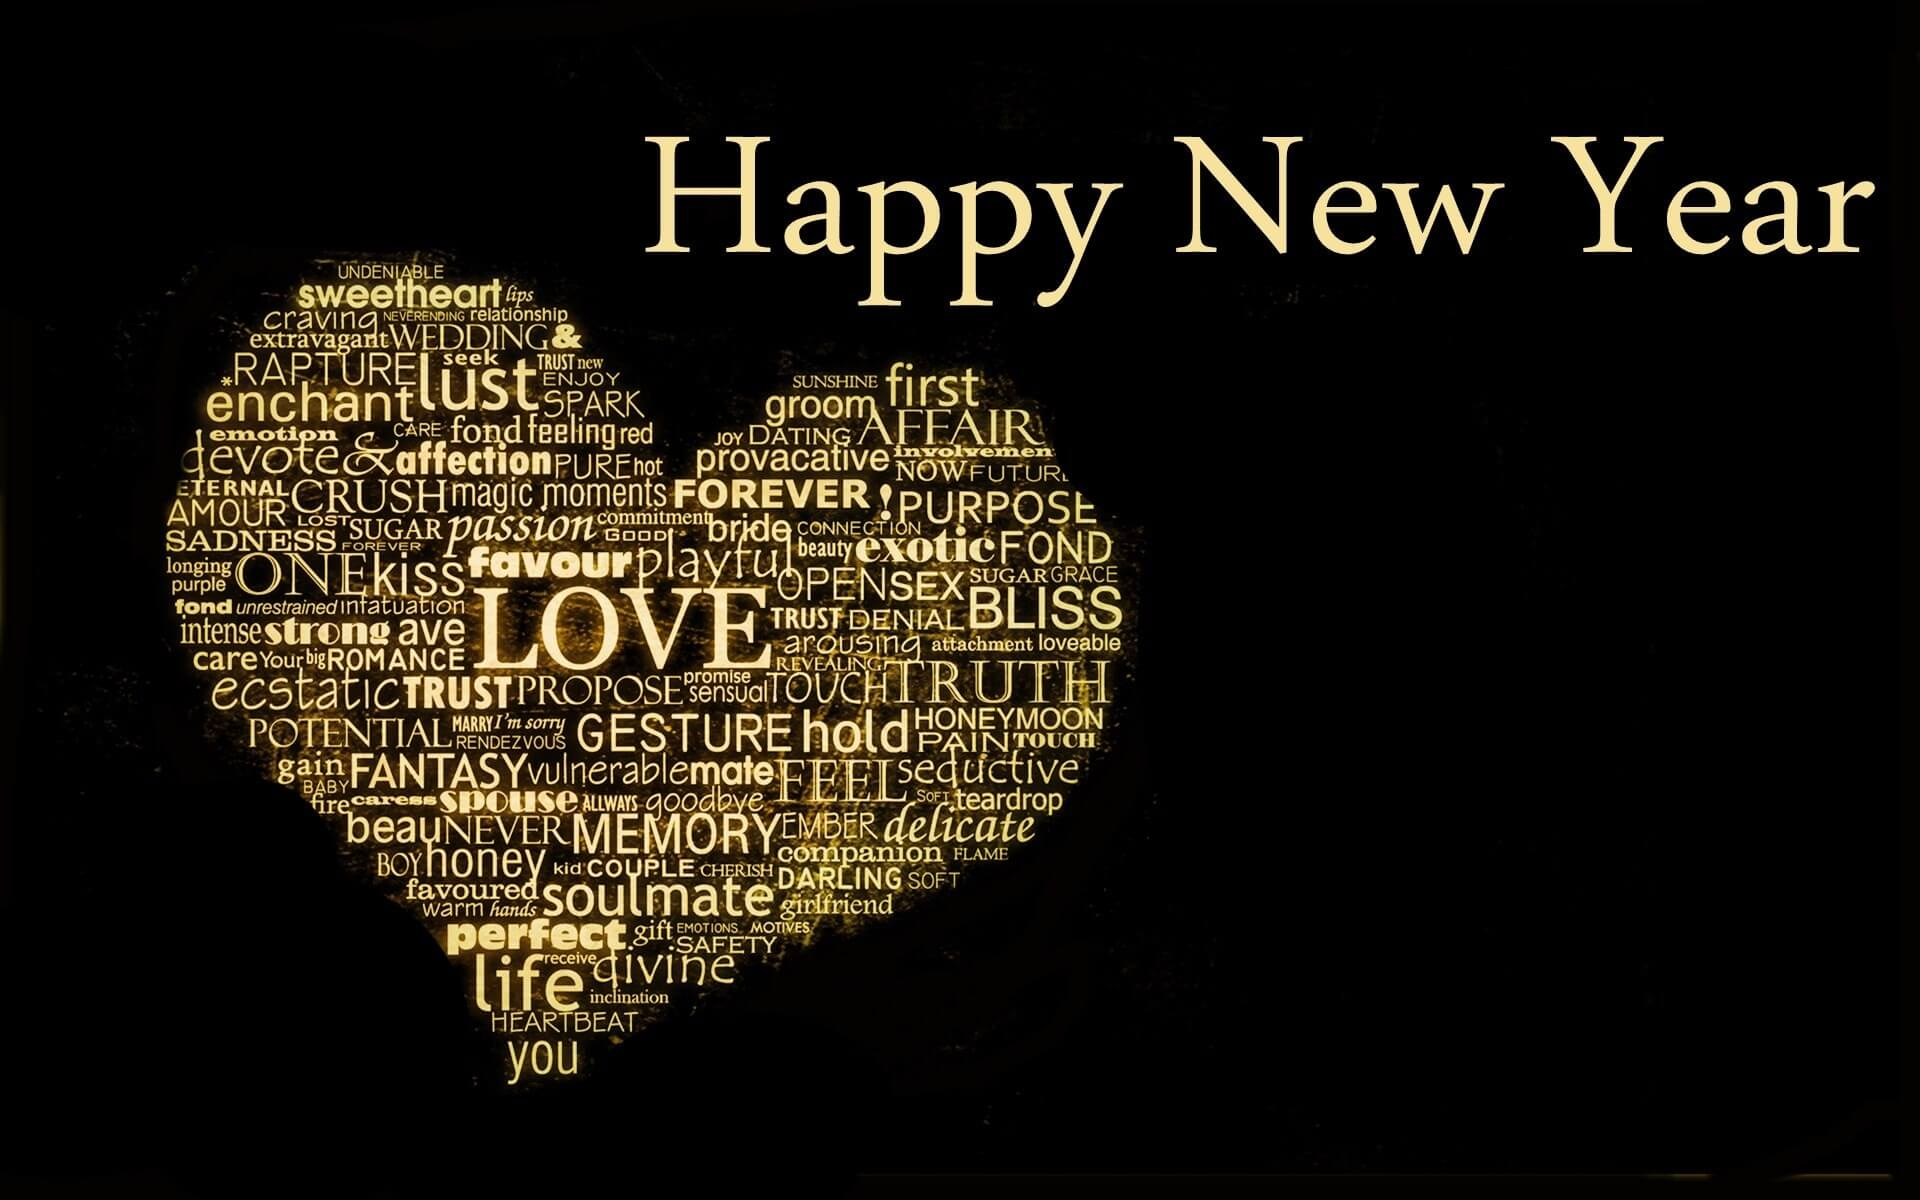 Happy New Year Wishes Heart Love - Quote Happy New Year 2019 - HD Wallpaper